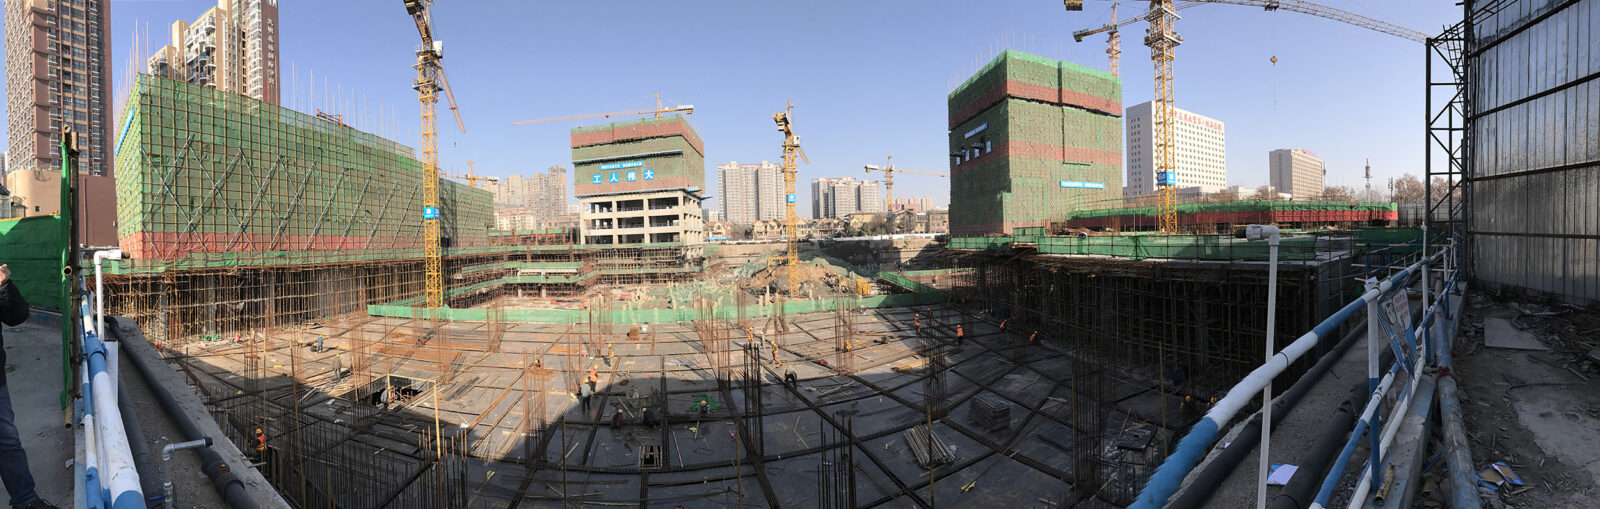 Haishang Plaza Construction Site January 16, 2017